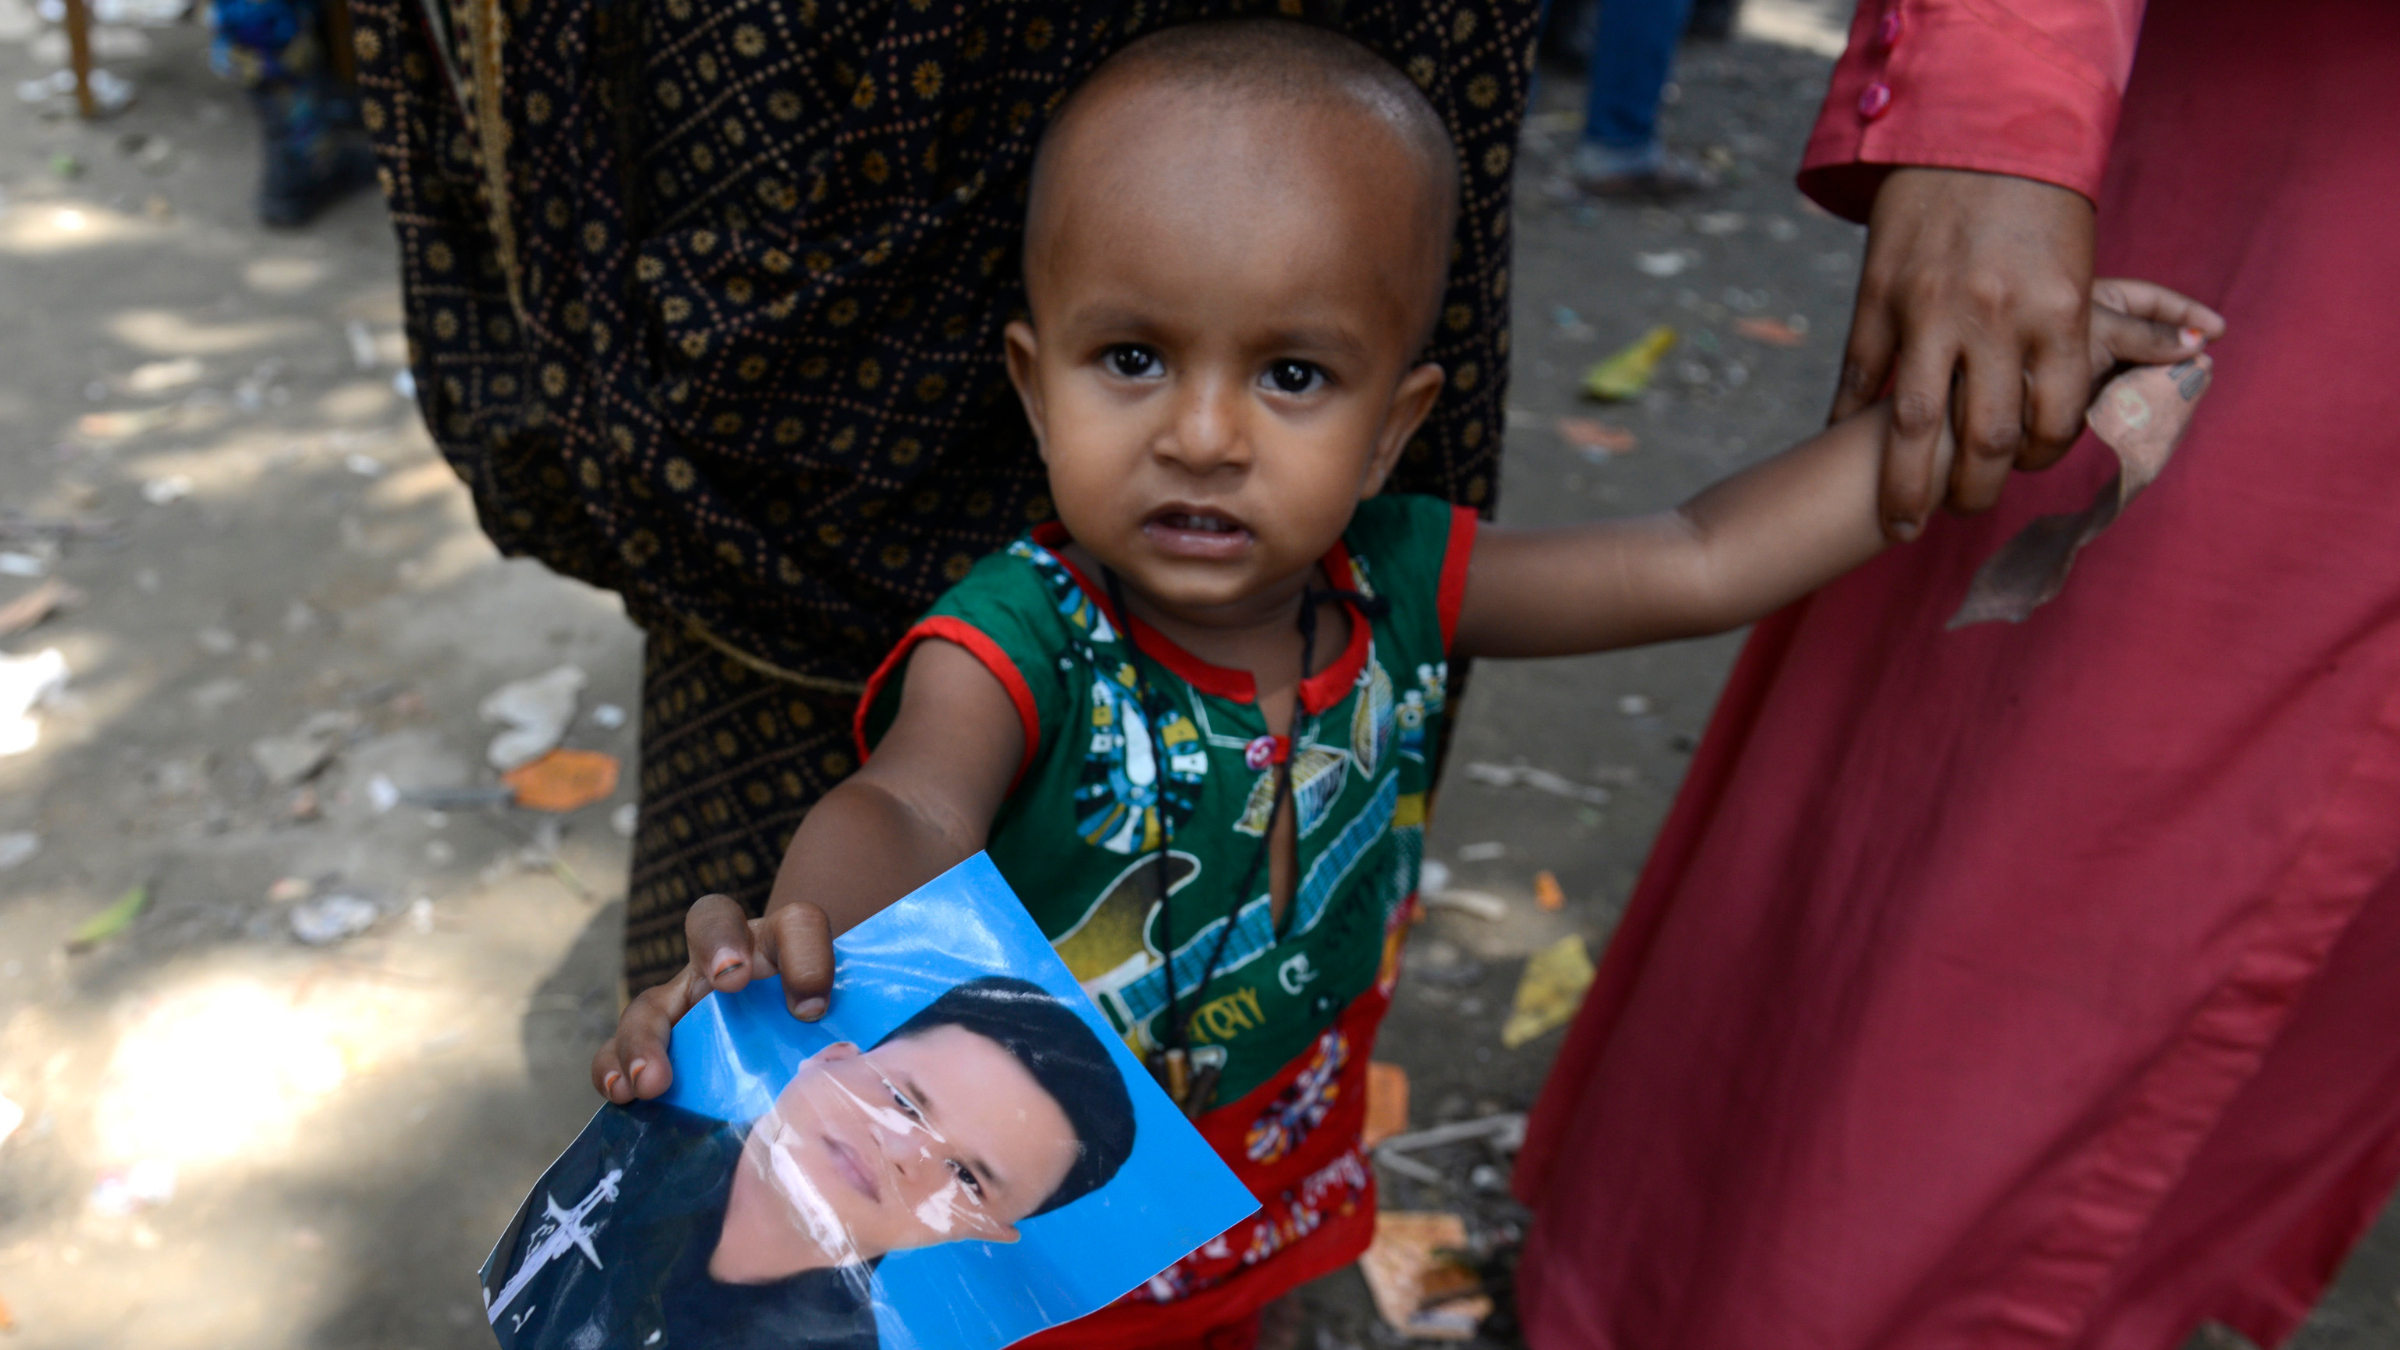 A Bangladeshi boy holds a photo of father